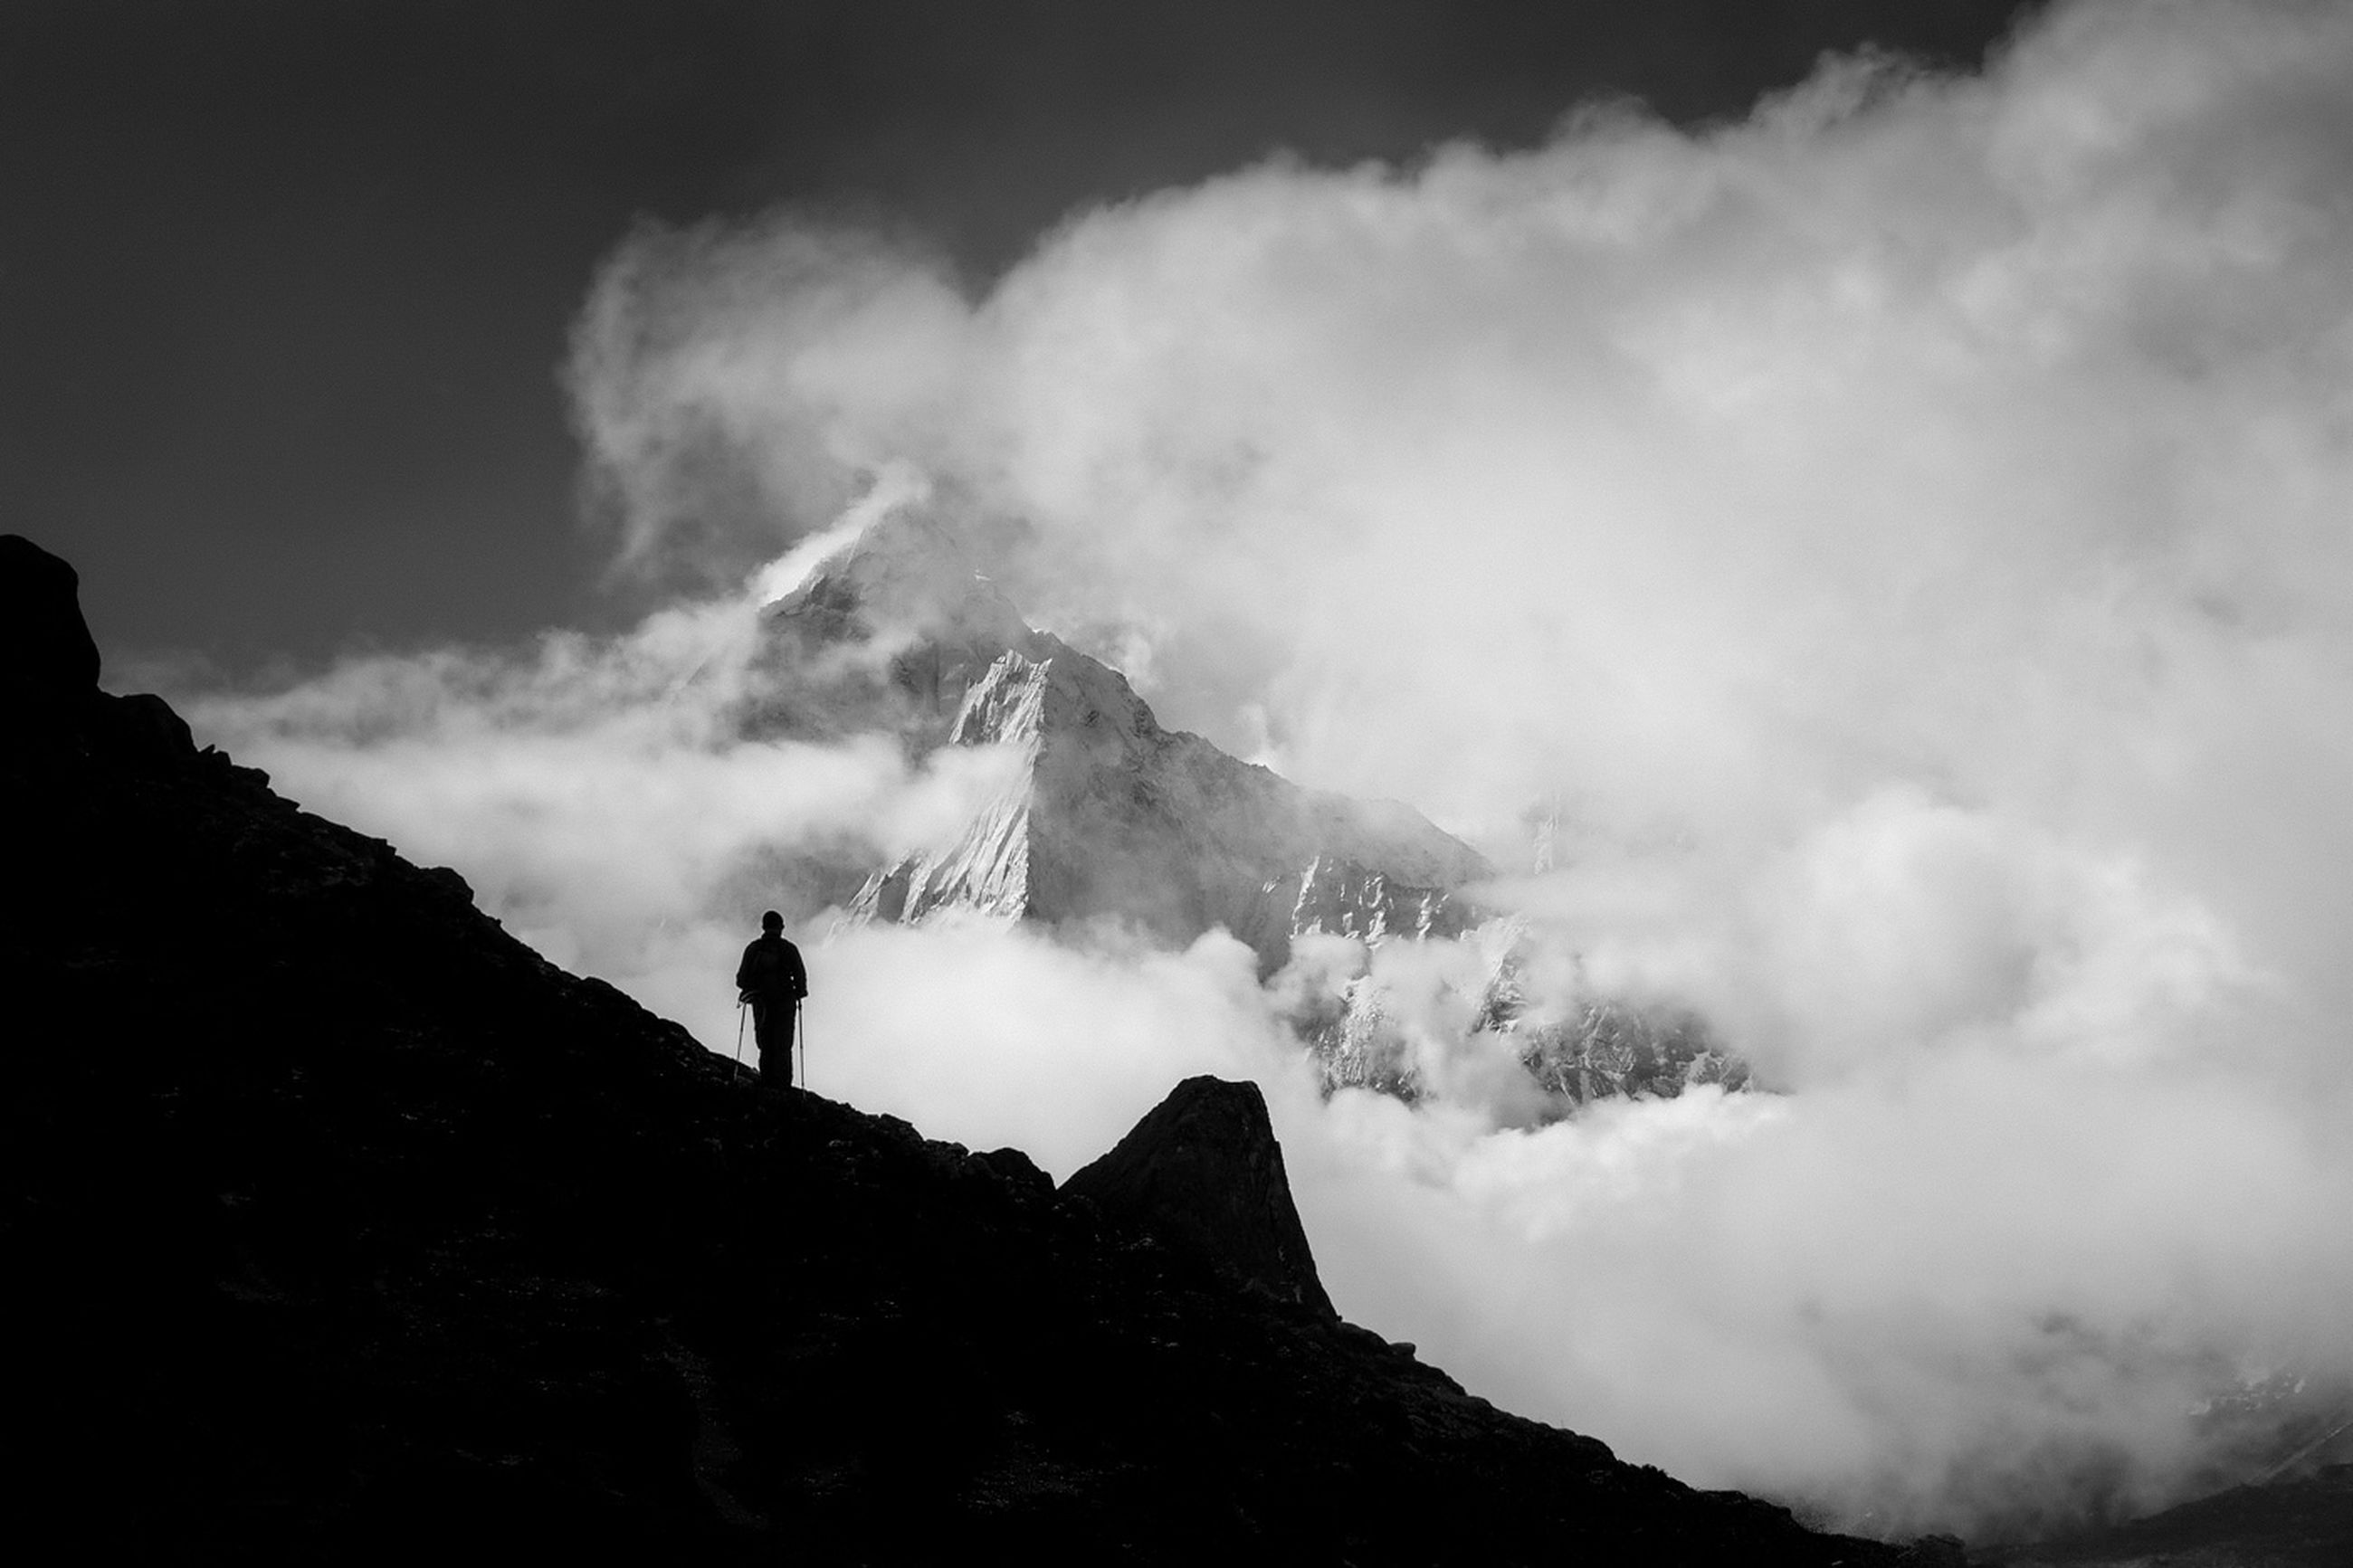 mountain, sky, weather, scenics, cloud - sky, mountain range, beauty in nature, leisure activity, lifestyles, snow, winter, men, cold temperature, tranquil scene, nature, tranquility, hiking, rock - object